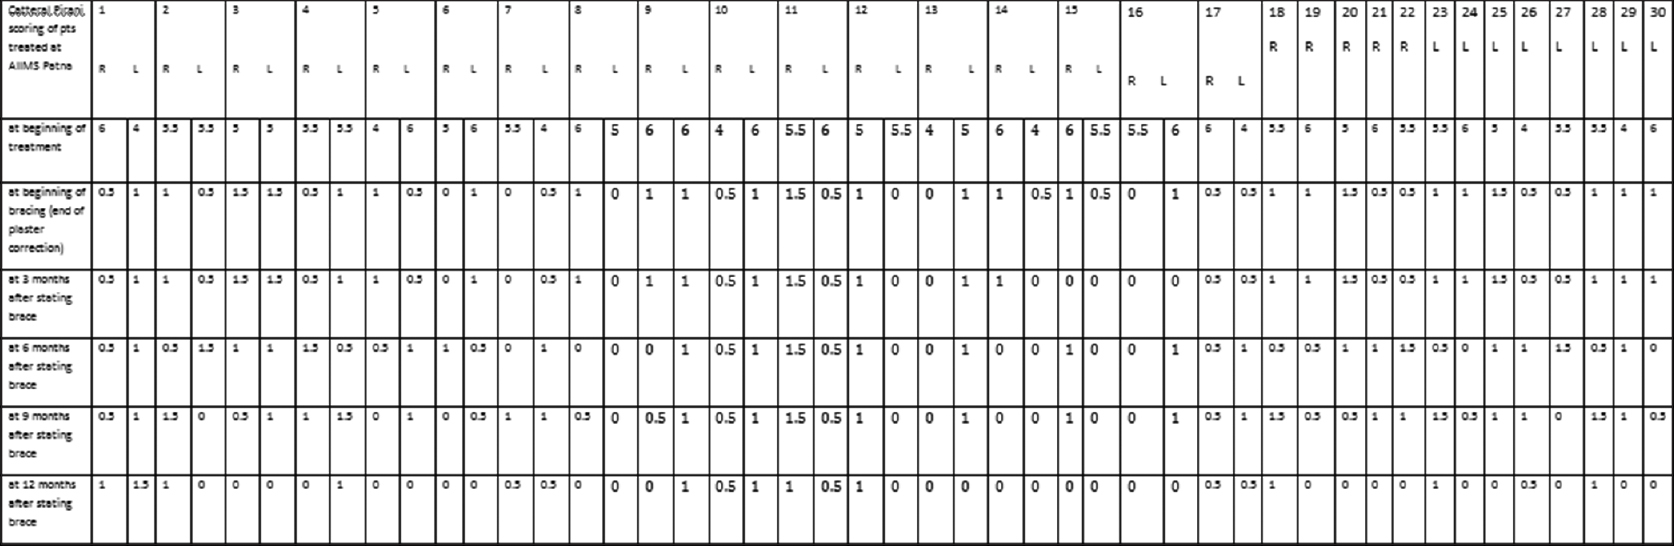 Figure 3: Evaluation chart – Catterall/Pirani scoring<sup>[3],[4],[13],[14],[15],[16],[17],[18],[19],[20]</sup> of patients treated at AIIMS Patna